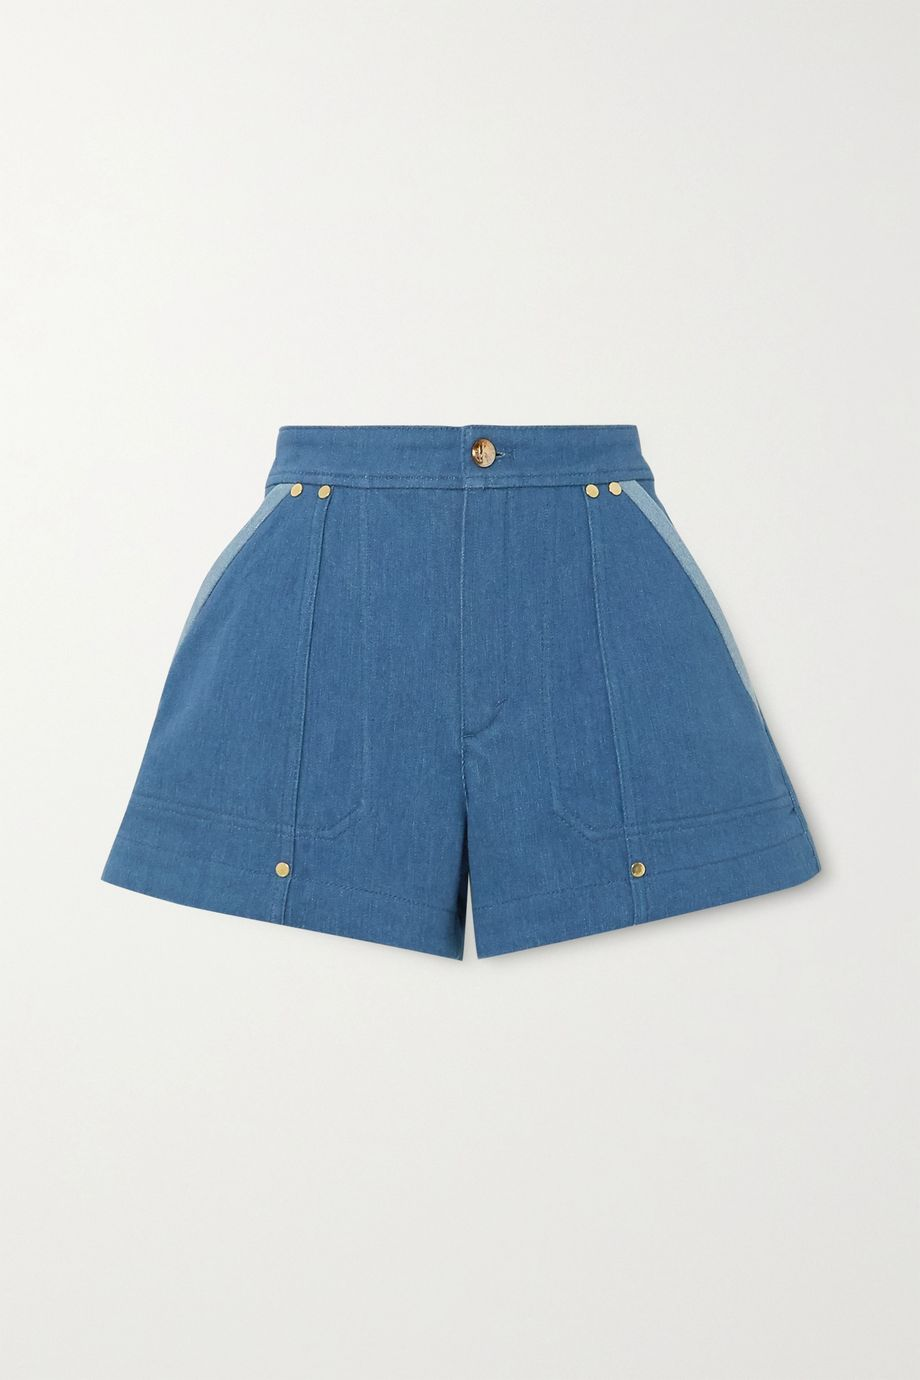 Chloé Embellished two-tone denim shorts